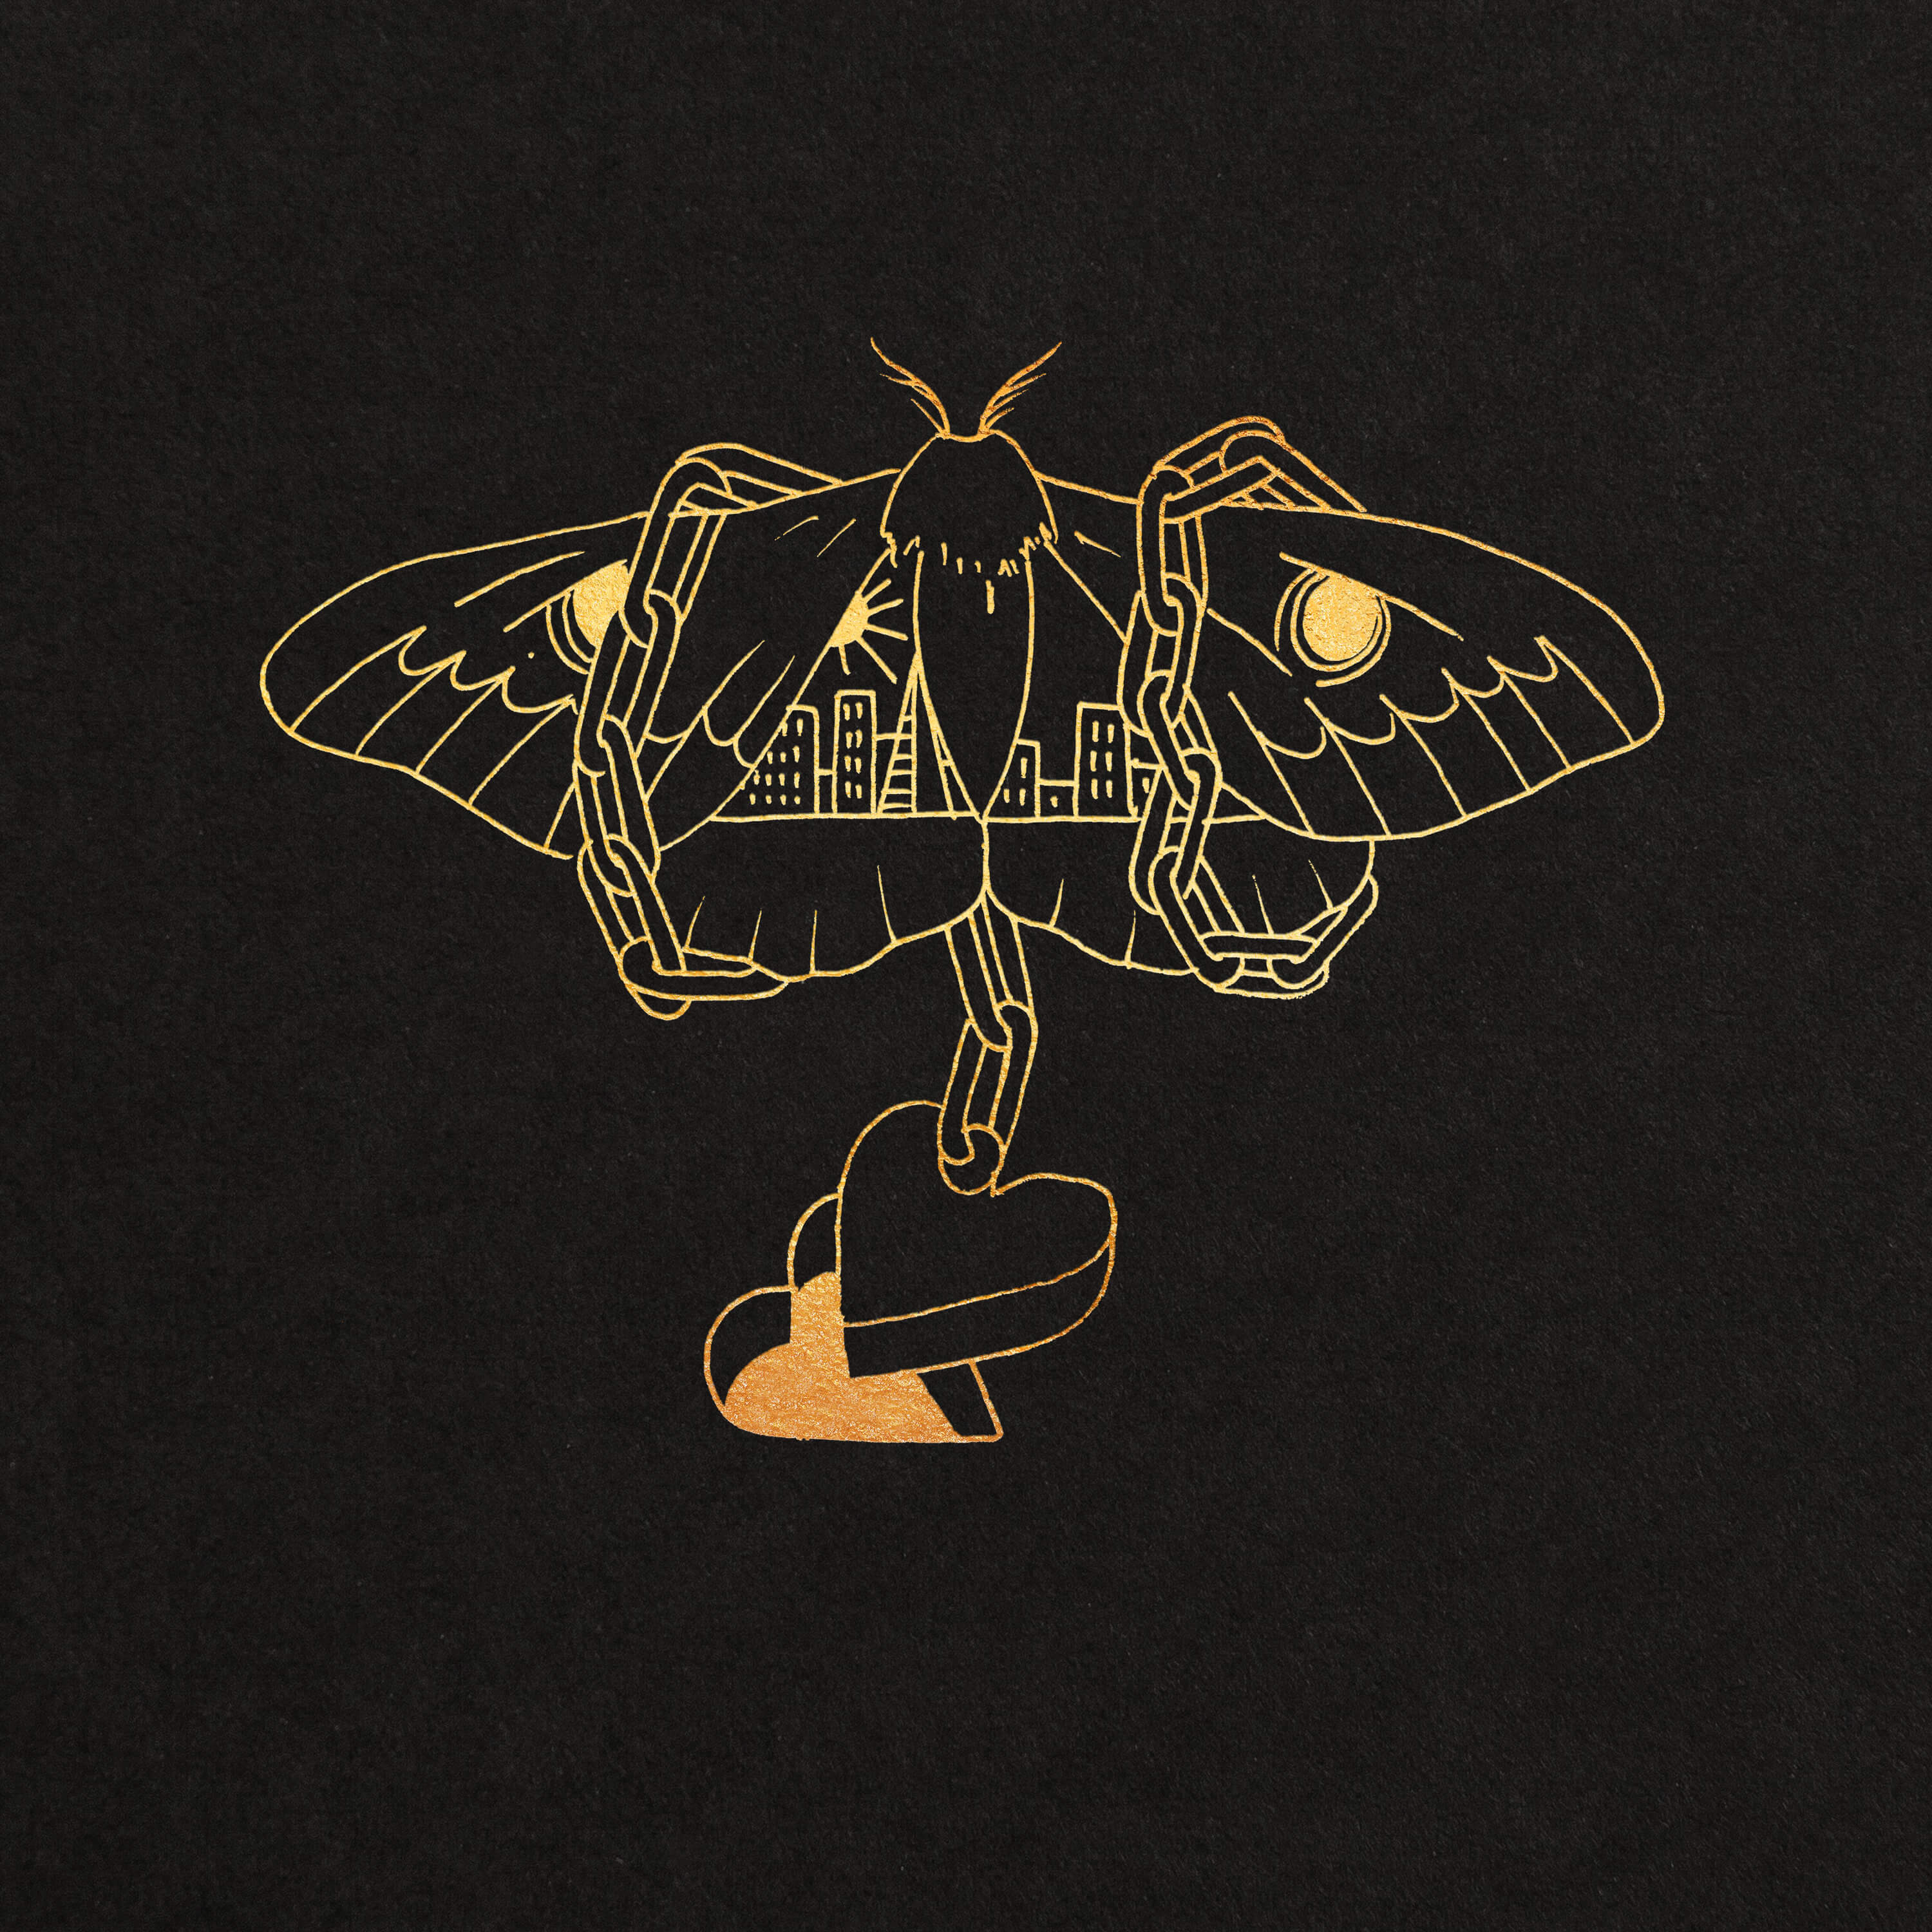 David Gray releases 'The Sapling' from new album 'Gold In A Brass Age'